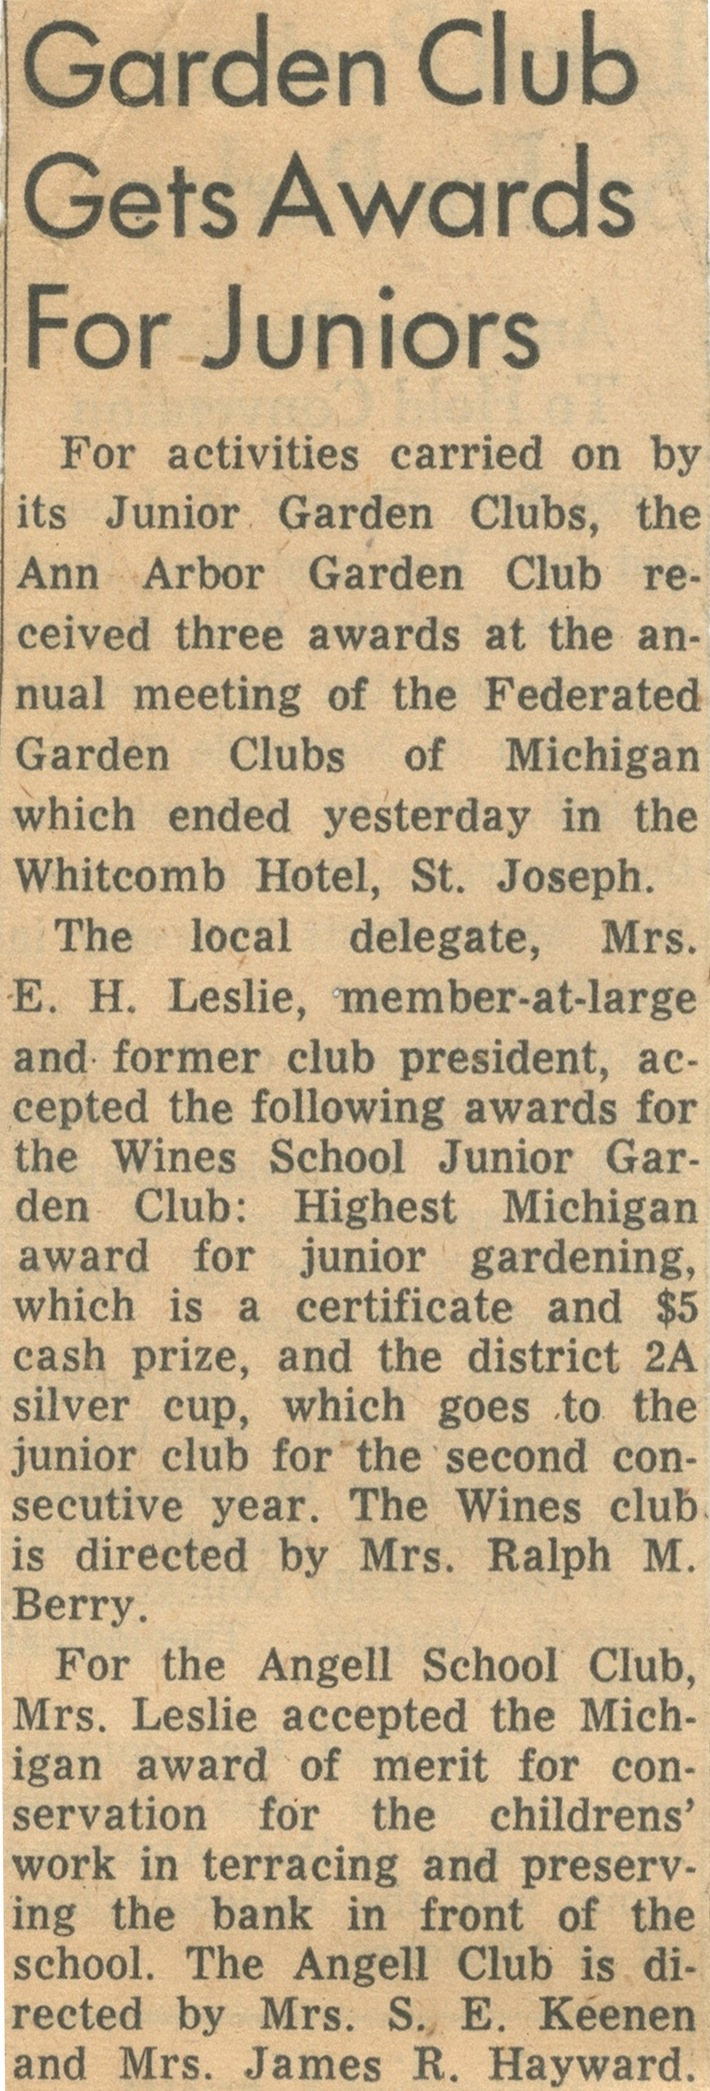 Garden Club Gets Awards For Juniors image